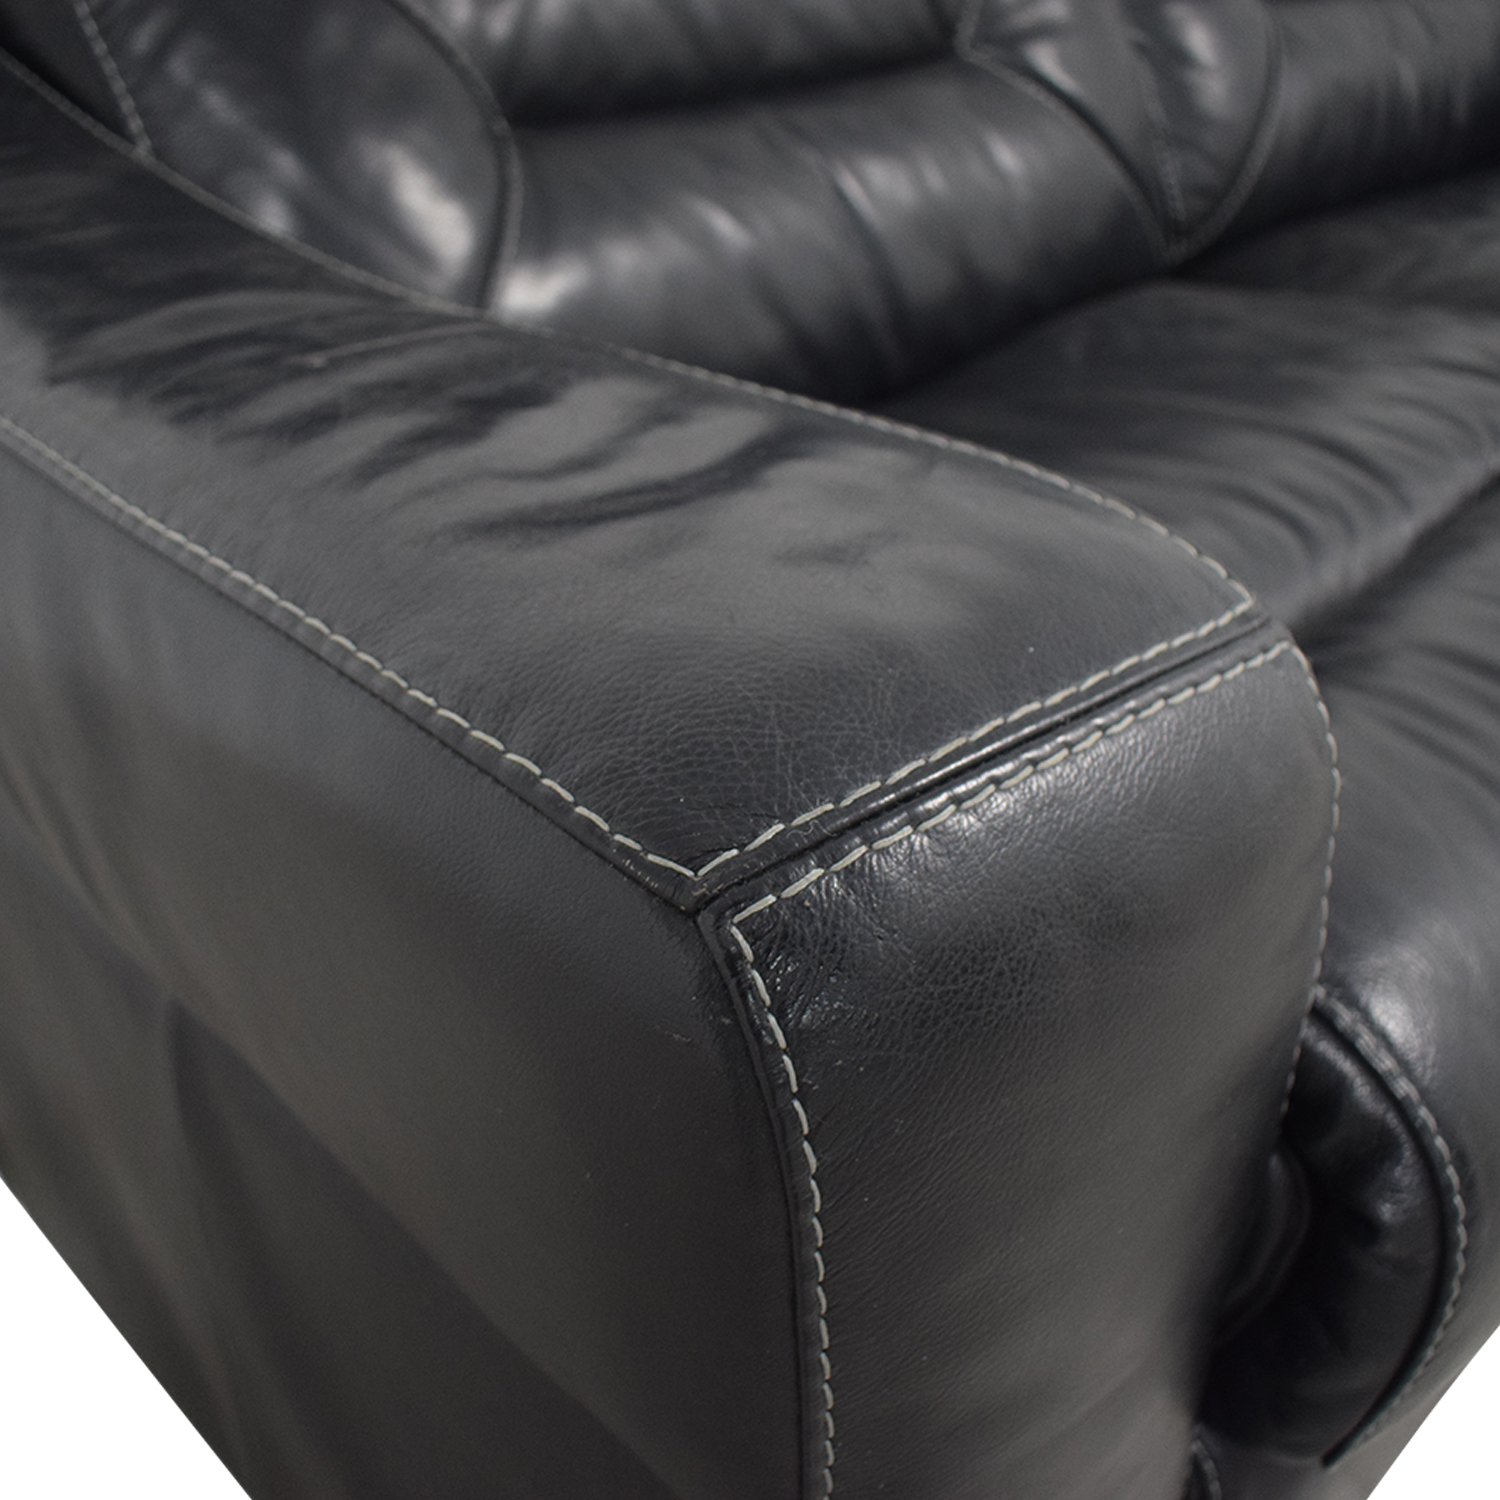 Macy's Macy's Judson Leather Dual Power Reclining Loveseat Sofas